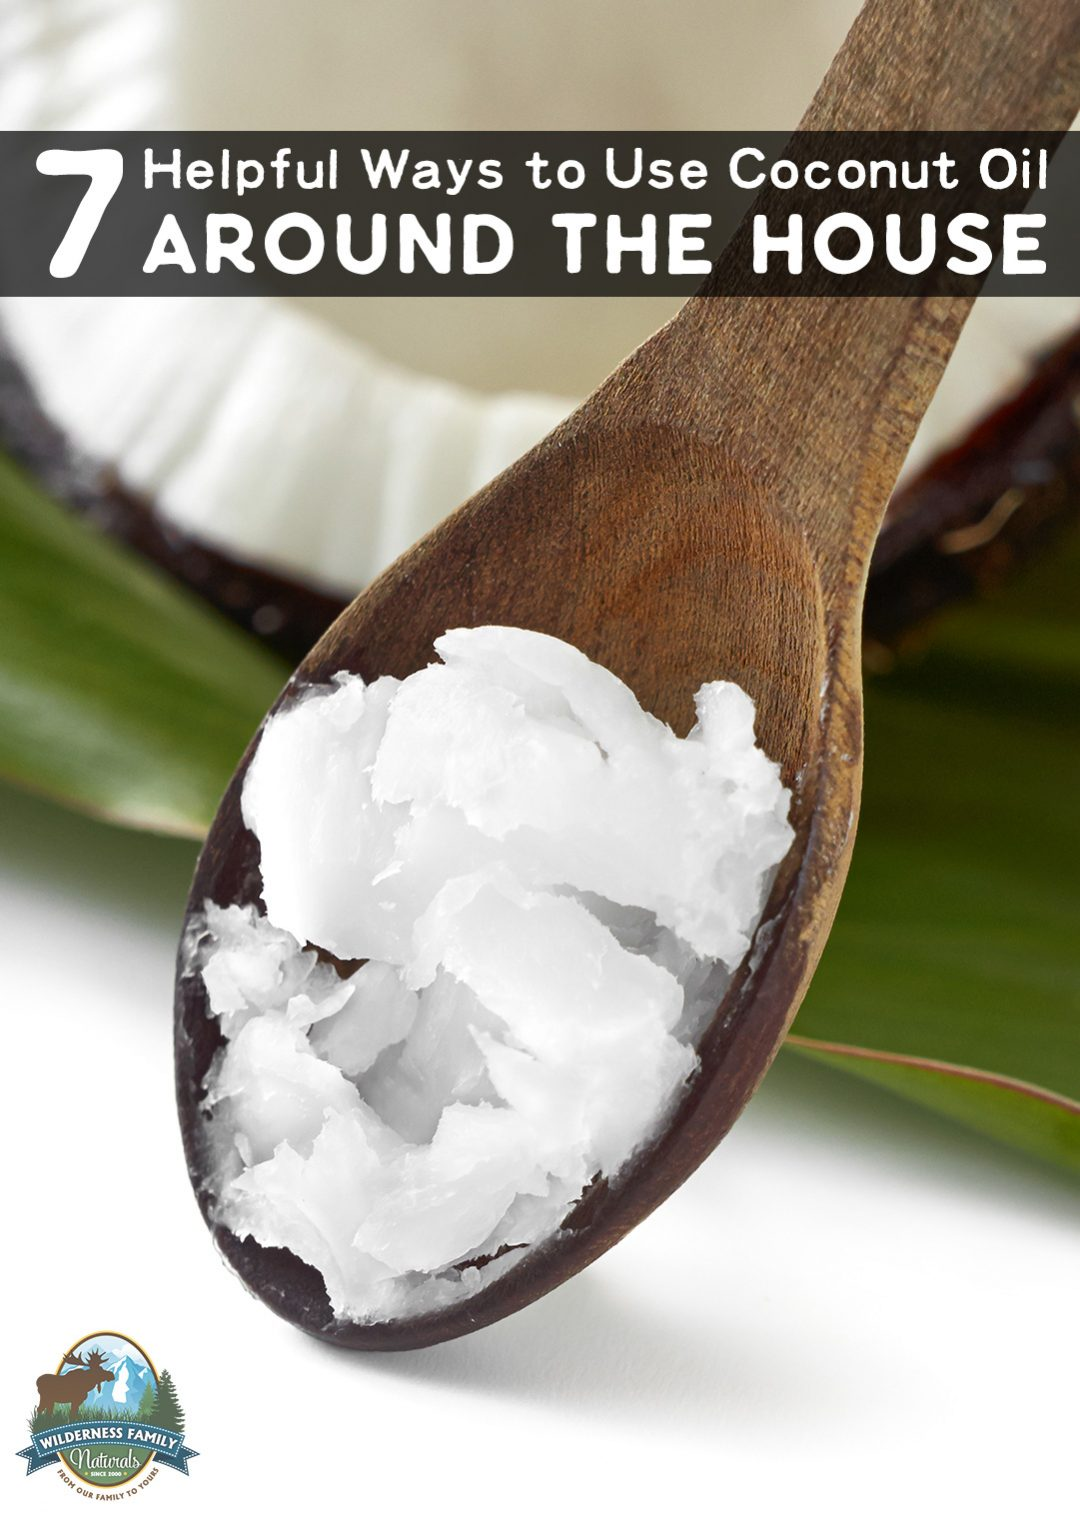 7 Helpful Ways To Use Coconut Oil Around The House | We all know coconut oil is one of the healthiest choices for cooking... But do you know all the ways to use coconut oil around the house?! Coconut oil's uses extend beyond the kitchen and DIY body products. Read on for all the ways you can use coconut oil around your house! | WildernessFamilyNaturals.com